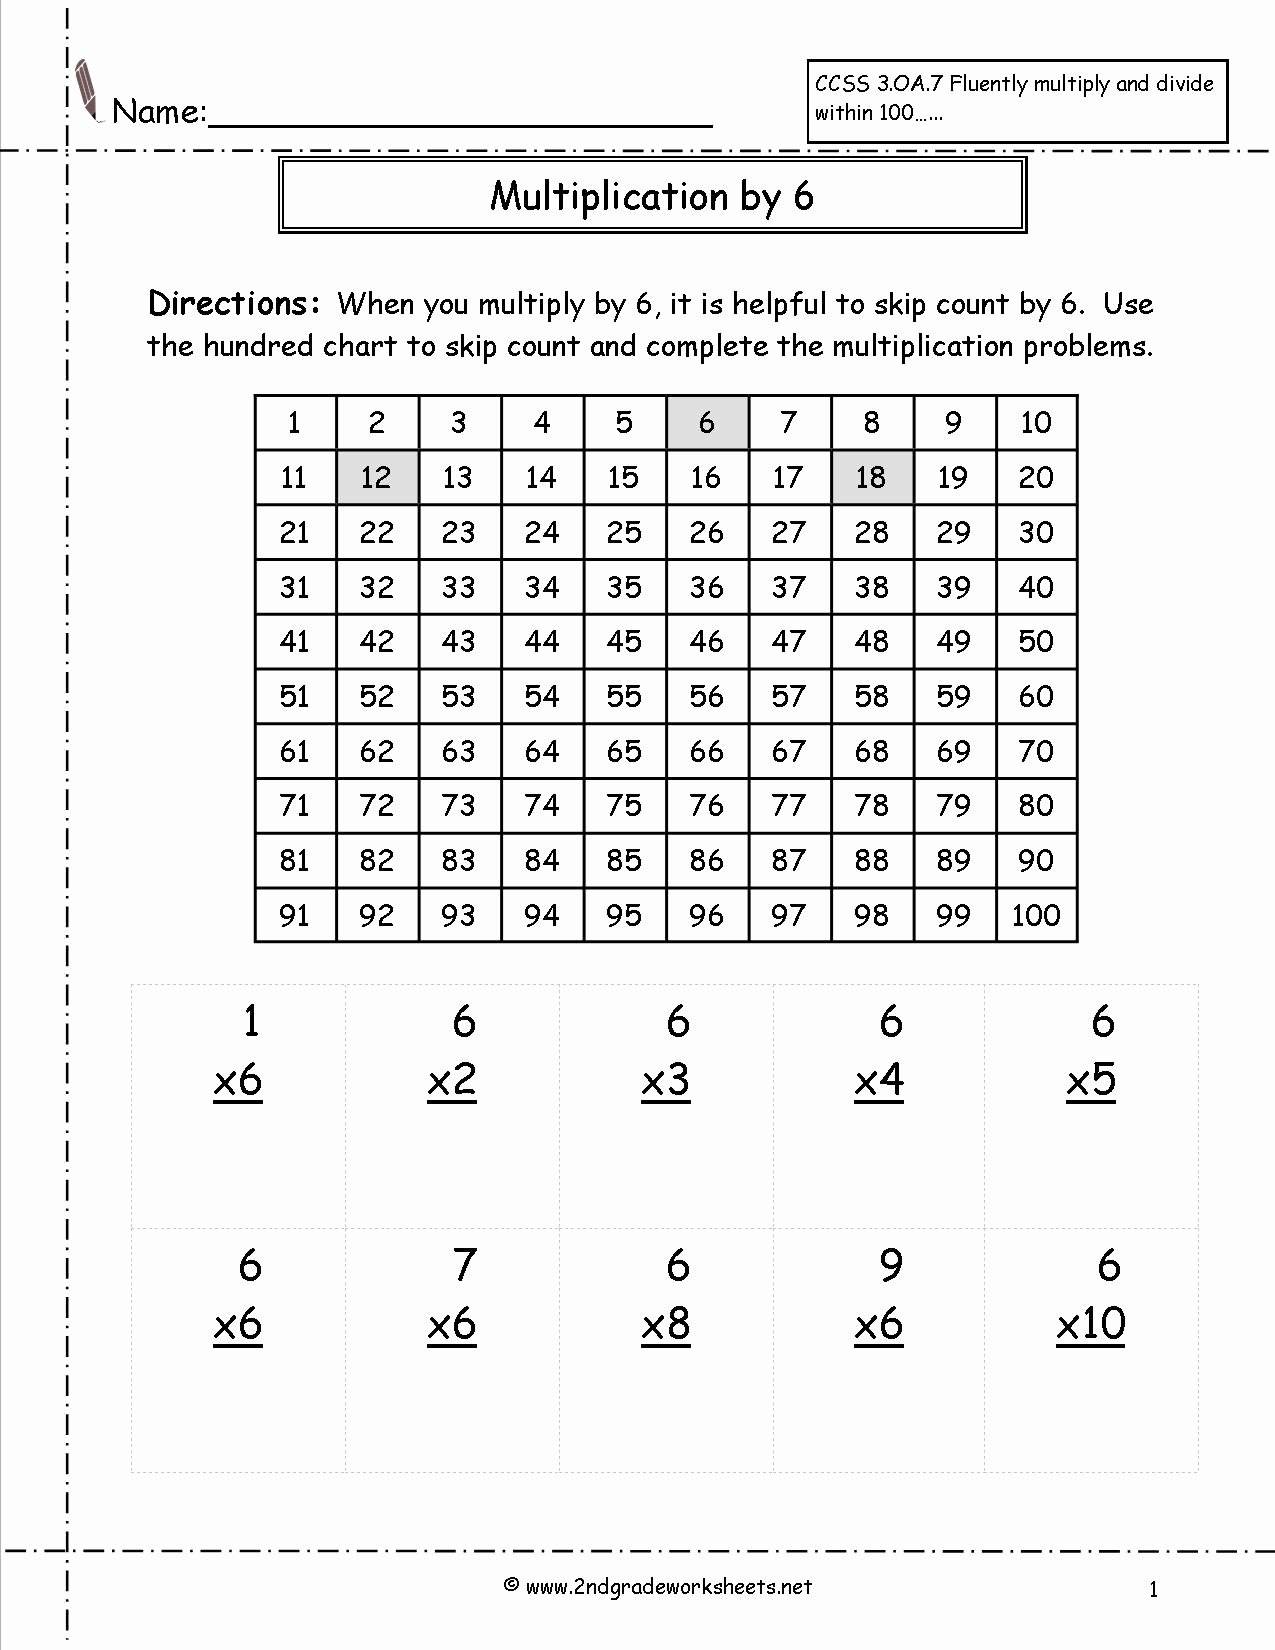 Multiplying by 6 Worksheet Unique Multiplication Worksheets and Printouts